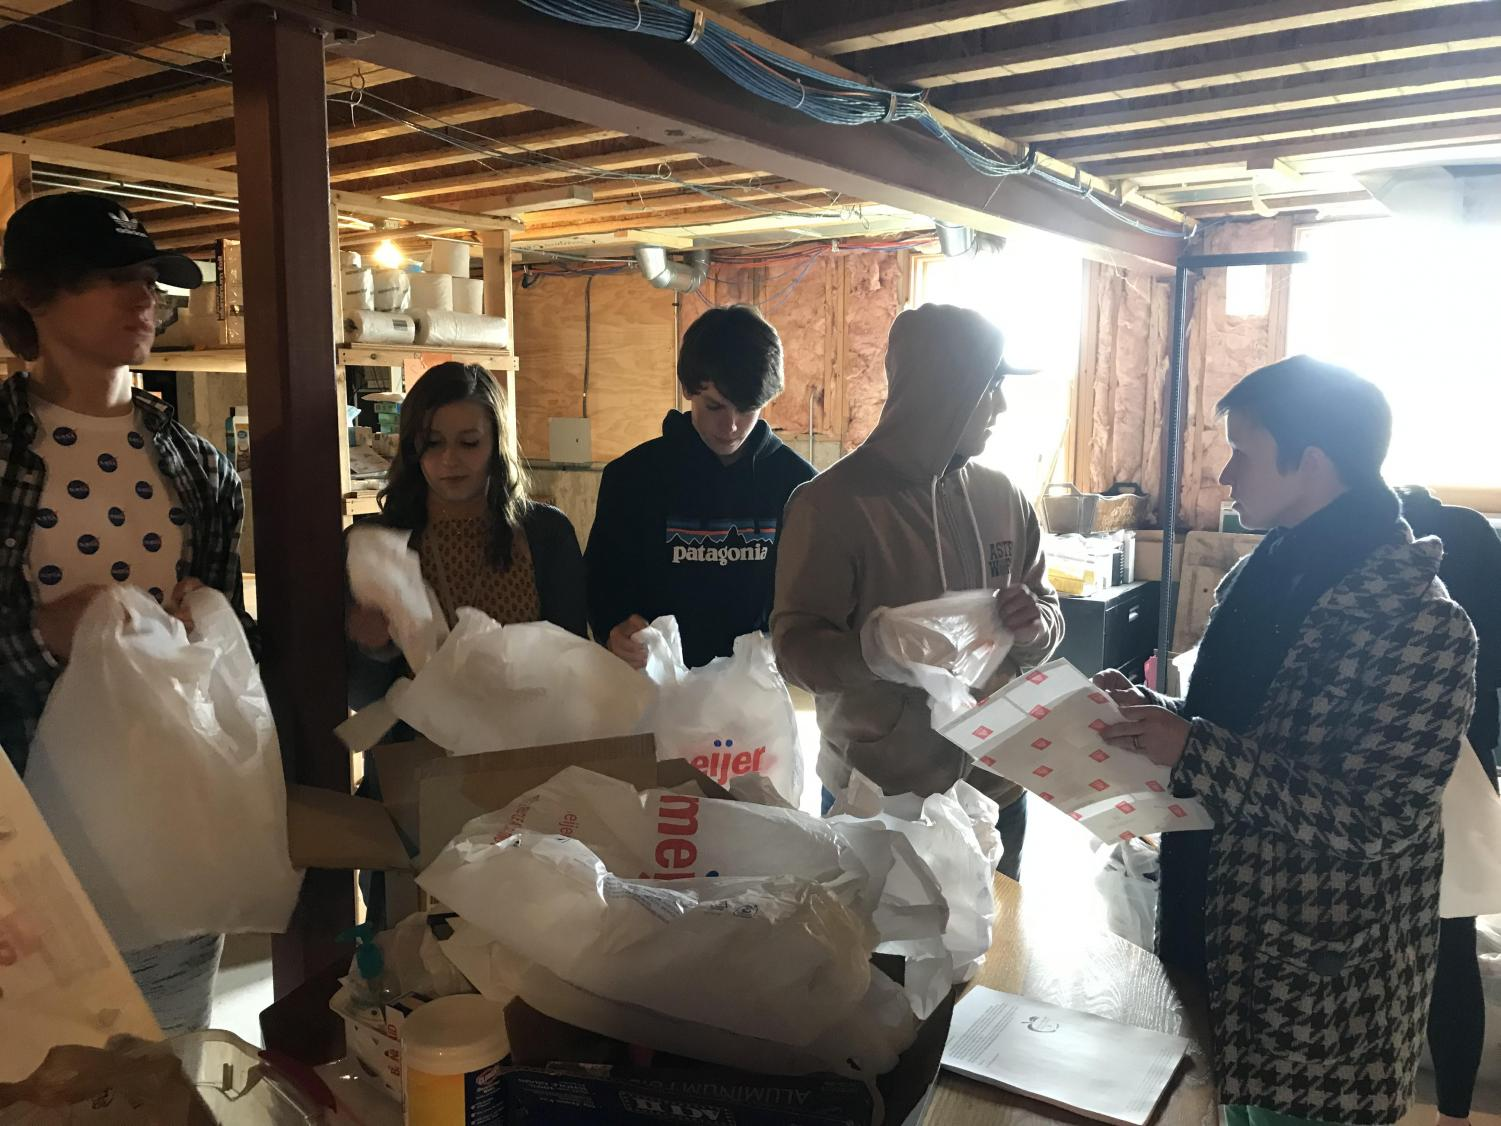 Food for Thought volunteers, Braeden Bromley, Julia Zickus, Kyle Hoskins, and Josh Duarte, meet in the basement of the Board of Education to assemble food bags to distribute to students.